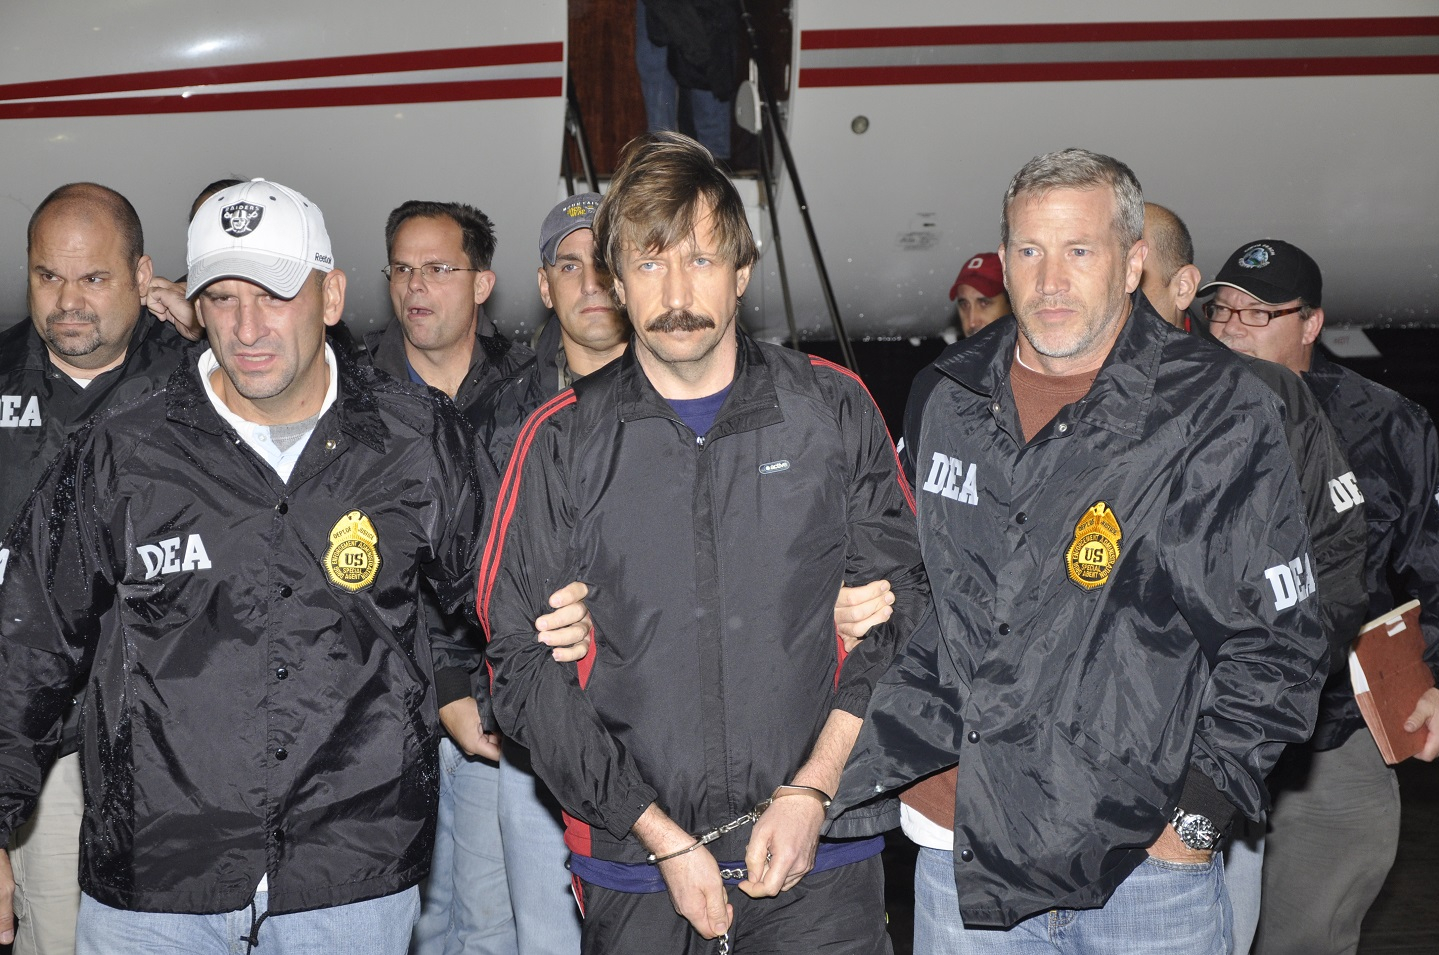 Former Soviet military officer and arms trafficking suspect Viktor Bout deplanes after arriving at Westchester County Airport November 16, 2010 in White Plains, New York.